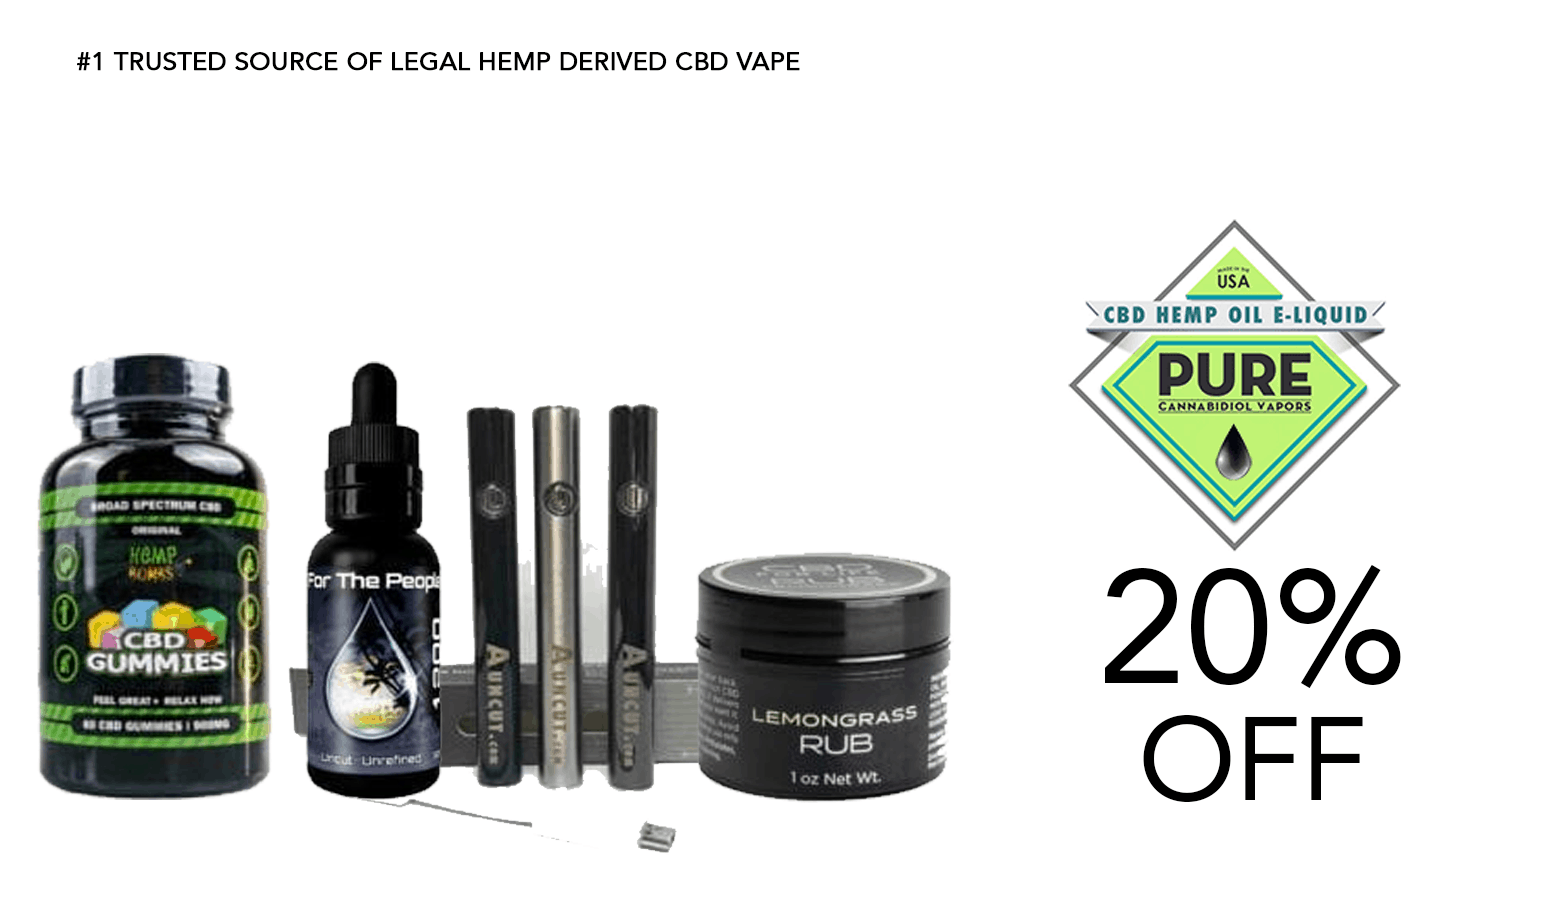 Pure CBD Vapors Coupon Code Offer Website